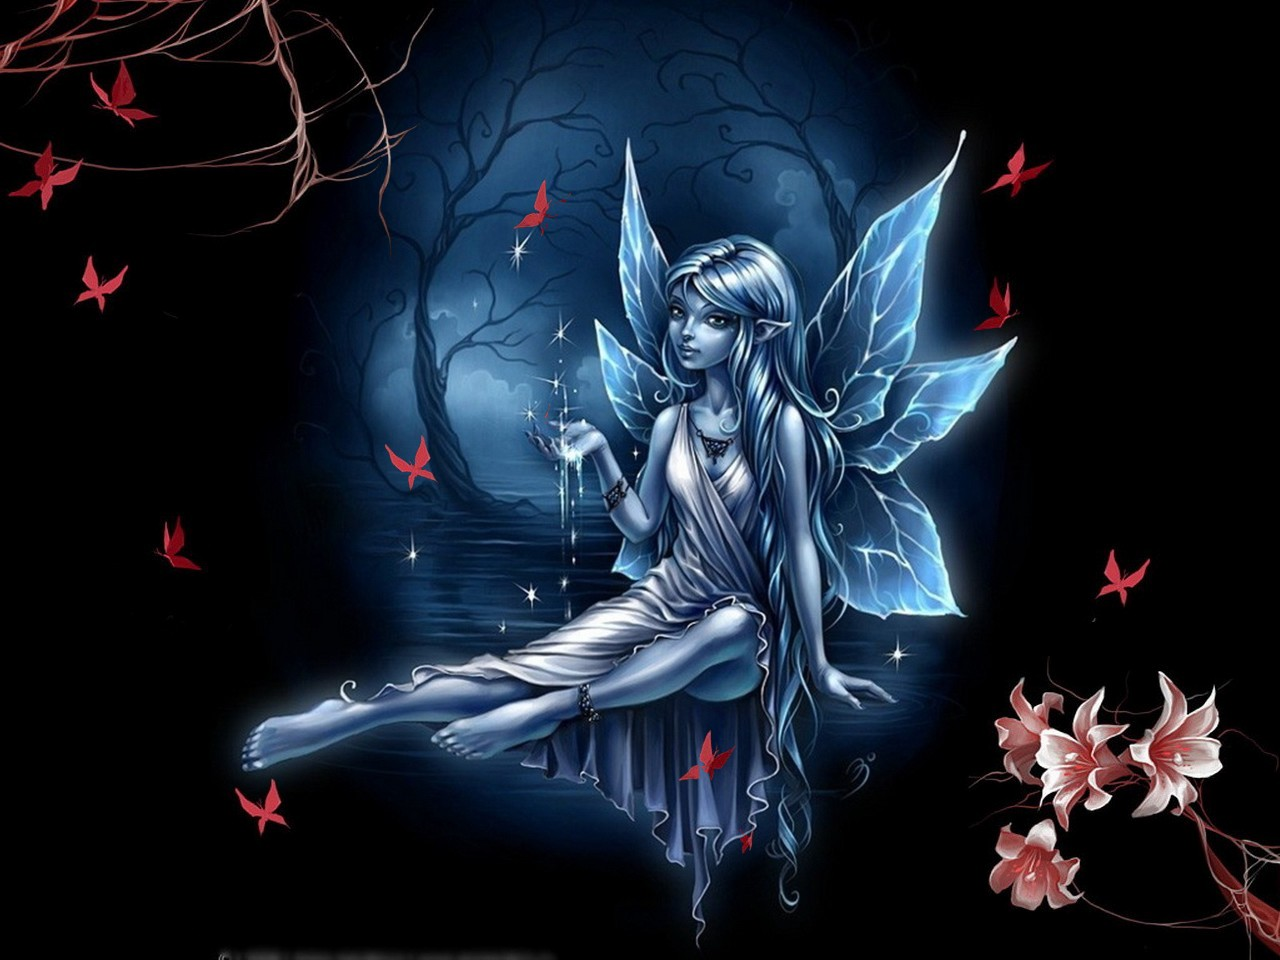 Fairy HD Wallpapers Fairy HD Wallpapers Check out the cool latest 1280x960